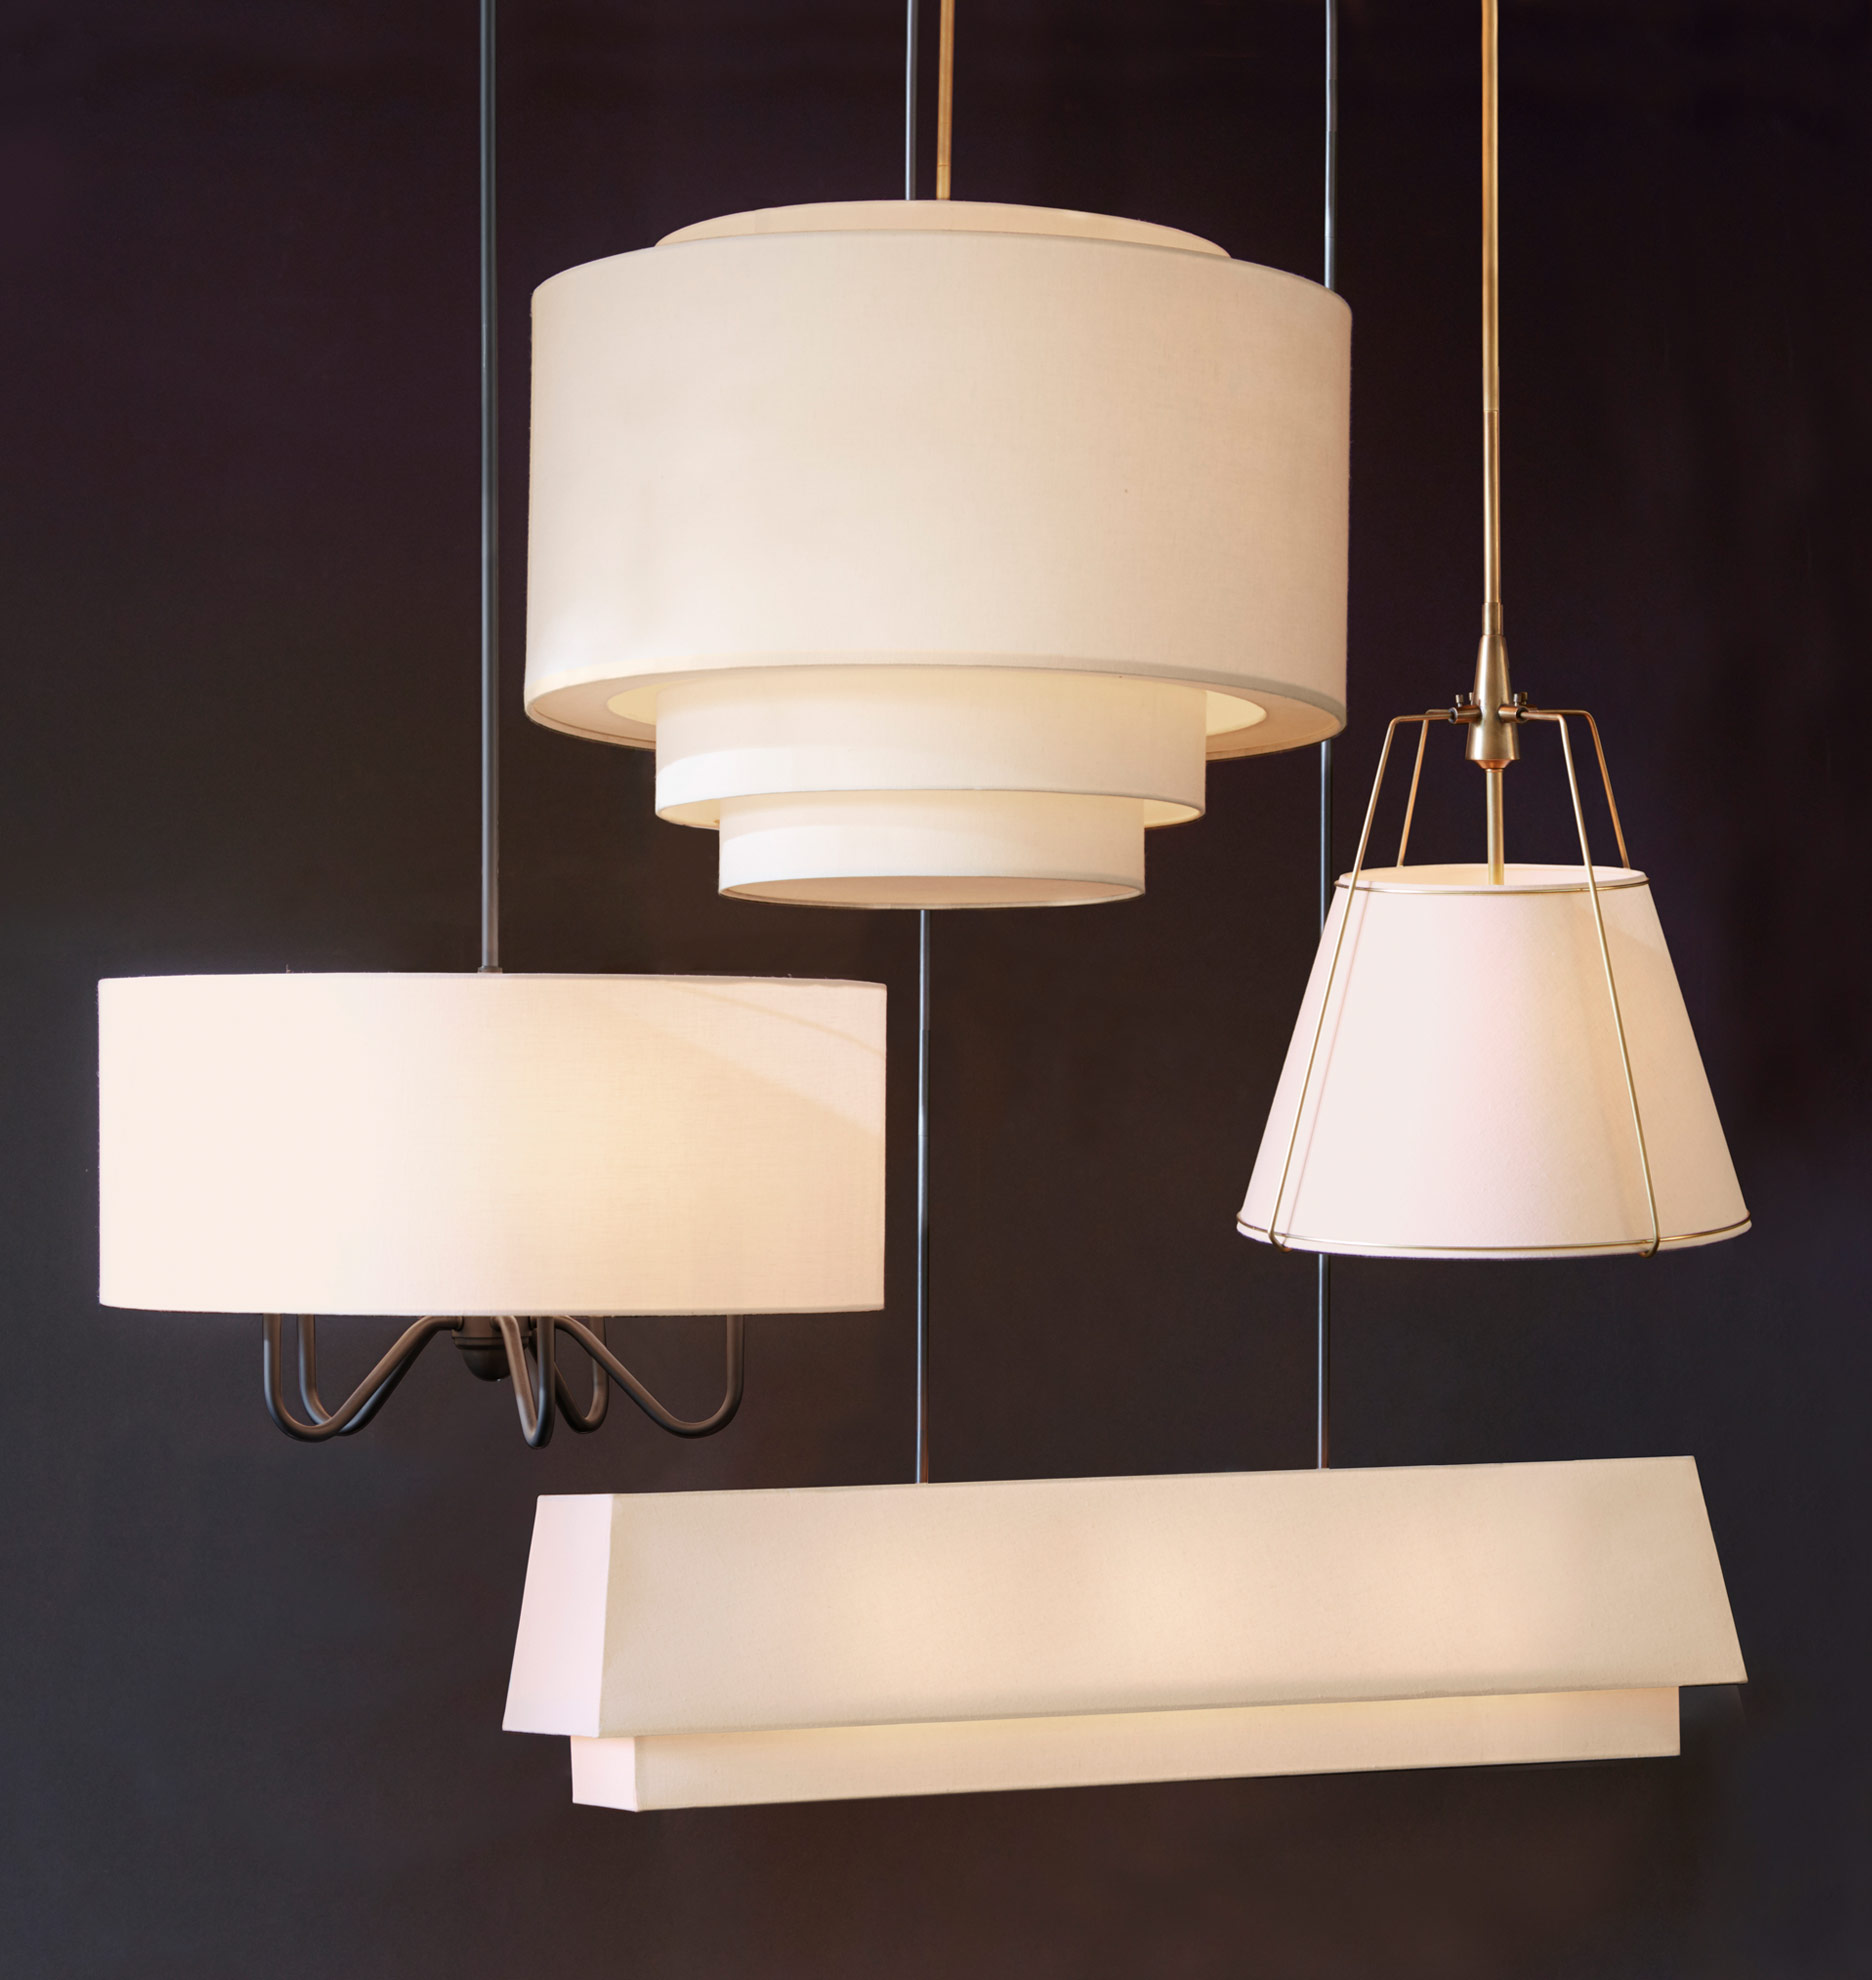 drum lighting pendant. Drum Lighting Pendant